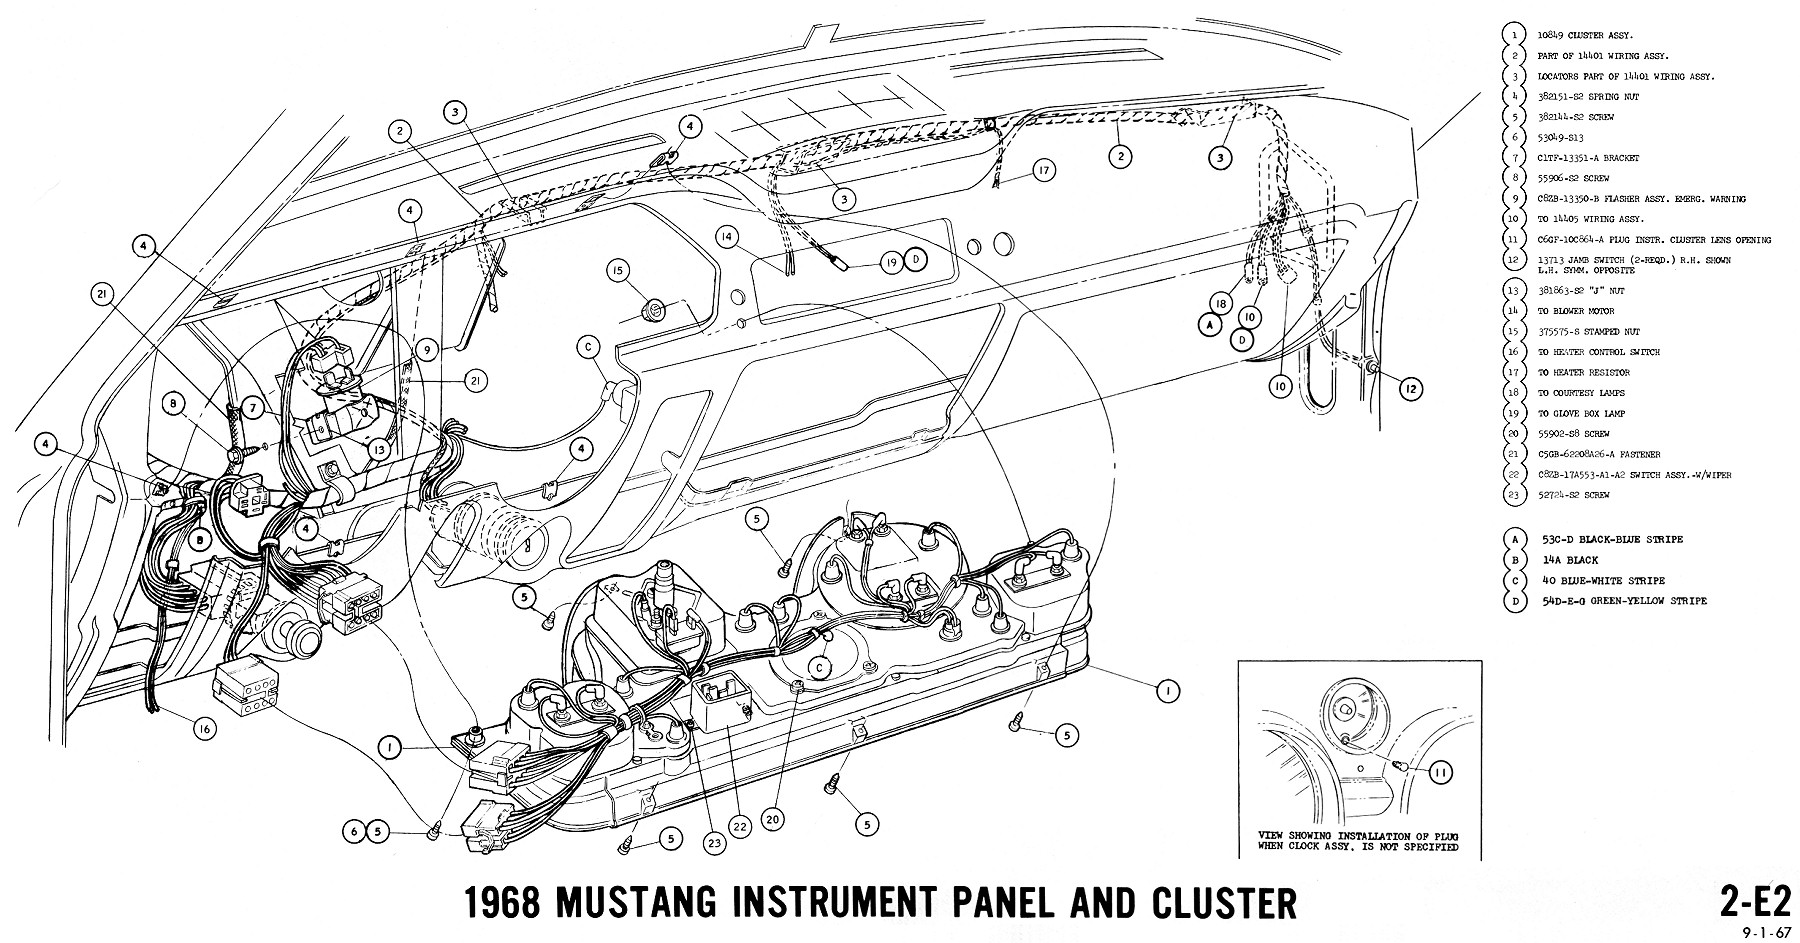 1968 mustang wiring diagram instruments 2 1968 mustang wiring diagrams and vacuum schematics average joe 66 mustang wiring diagram at eliteediting.co